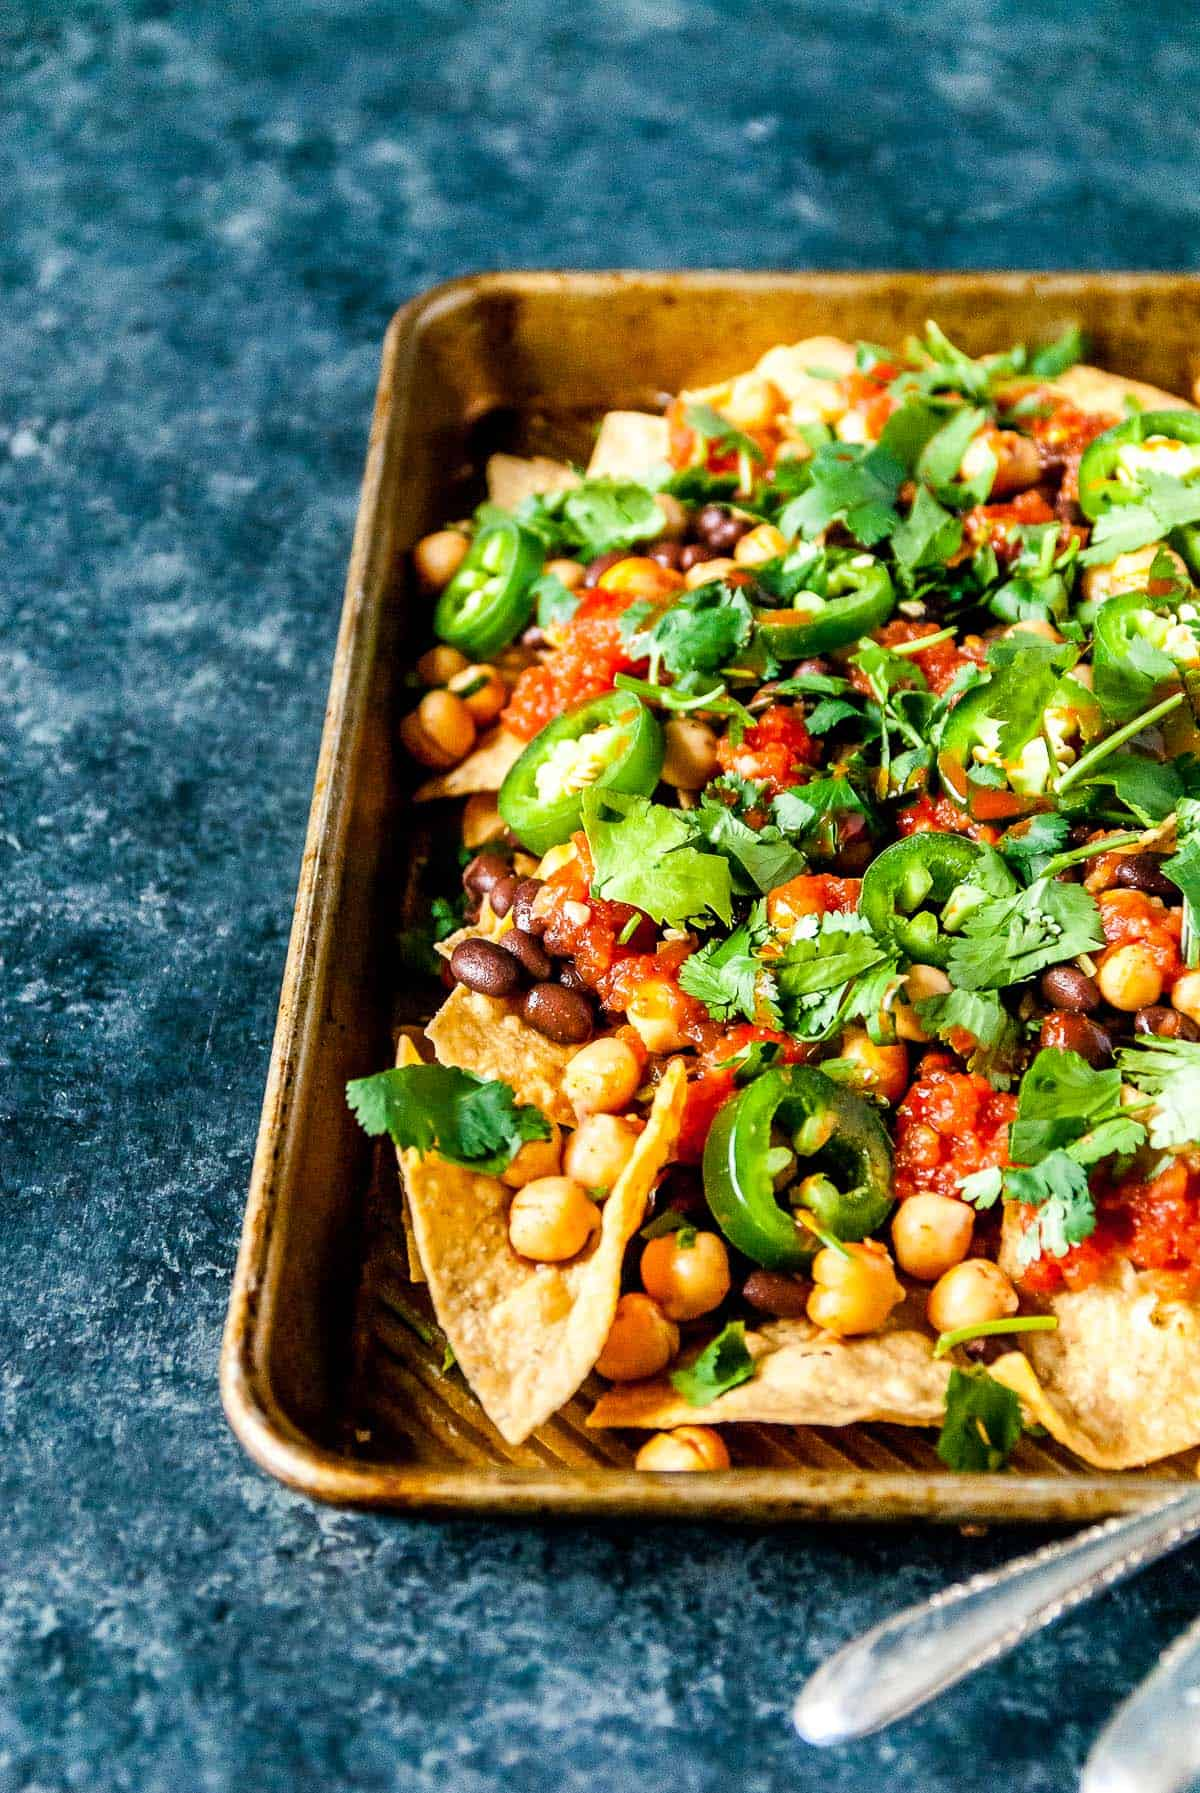 The ultimate vegan nachos, loaded with black beans, spicy chickpeas, and all your favorite toppings! These are a winner for your next party, potluck, or family dinner.